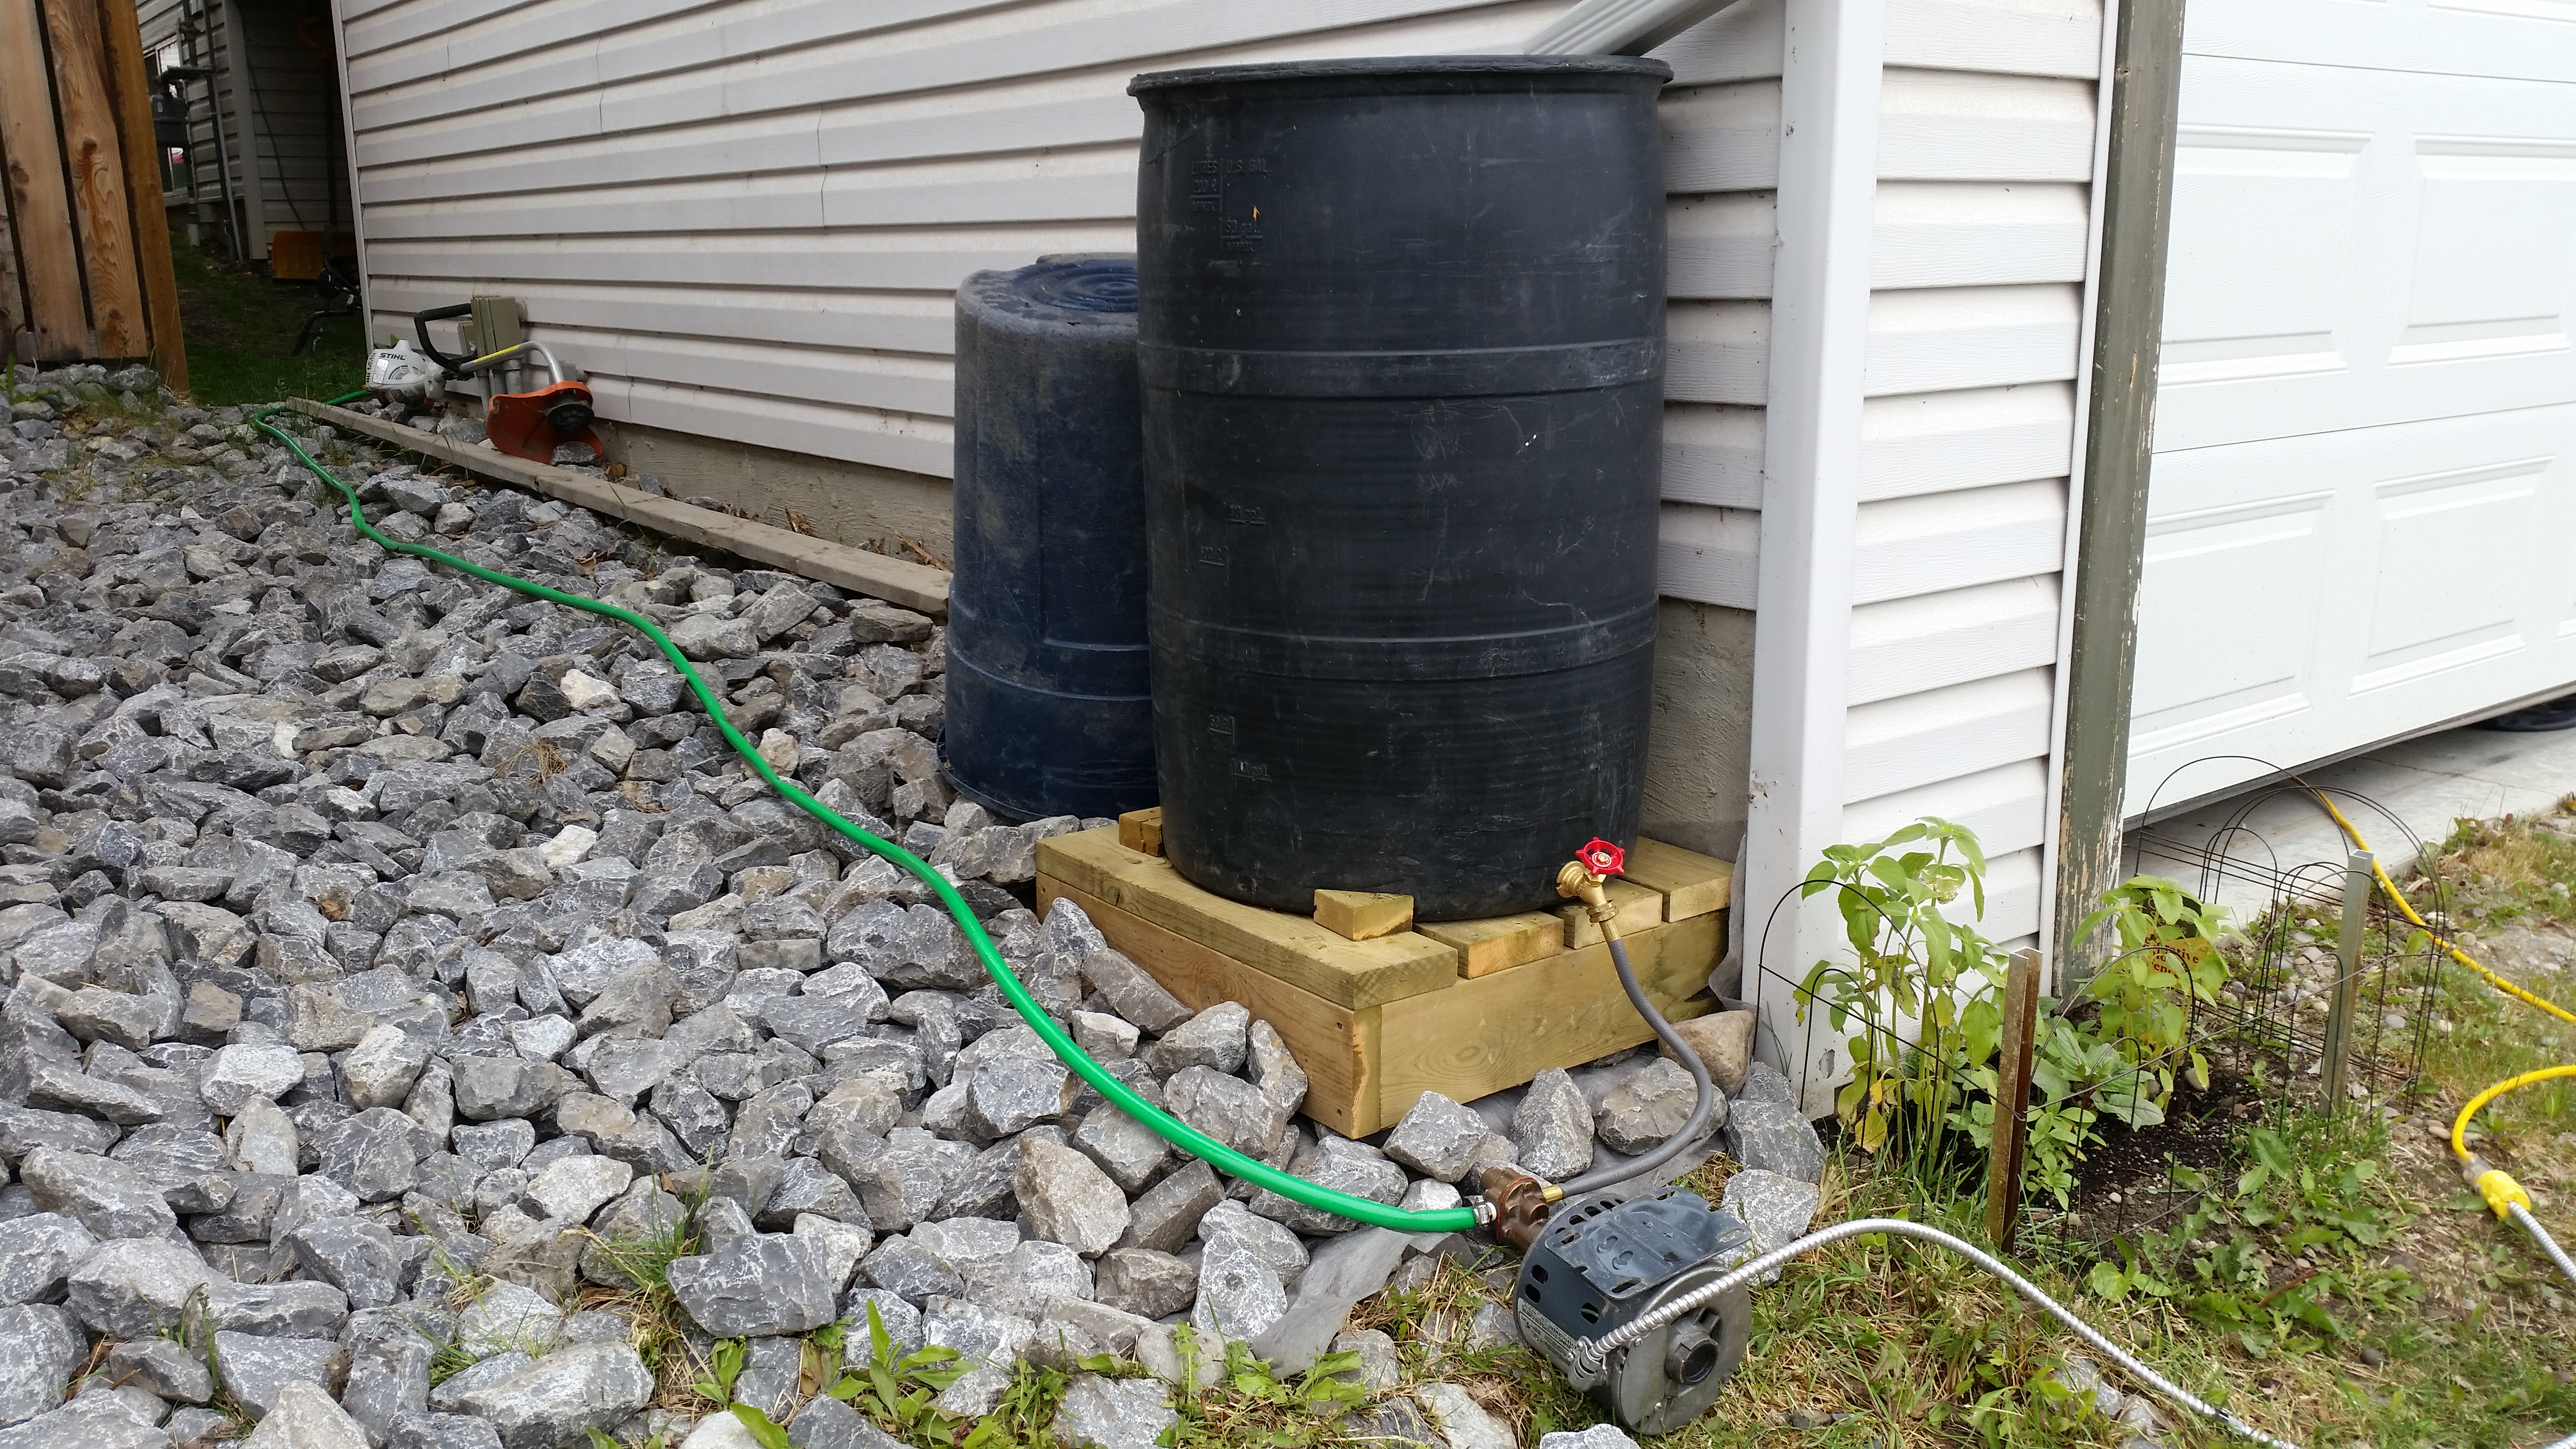 Using a small pump, we transferred the contents of the rain barrel under the down spout to other barrels stored under the deck.